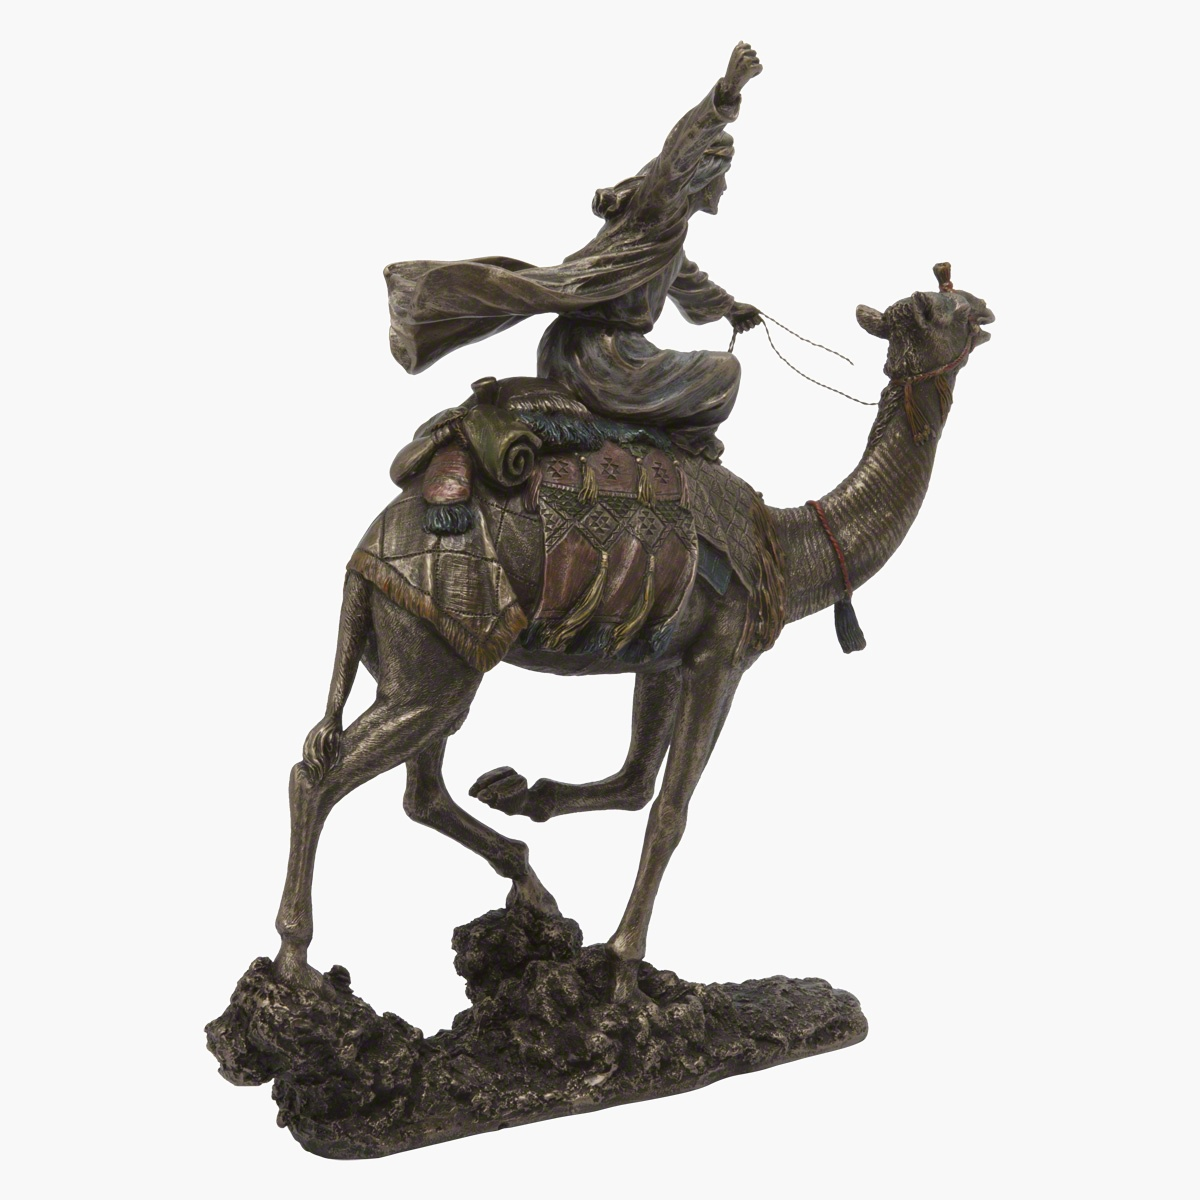 Adore Bedouin Galloping The Camel Figurine